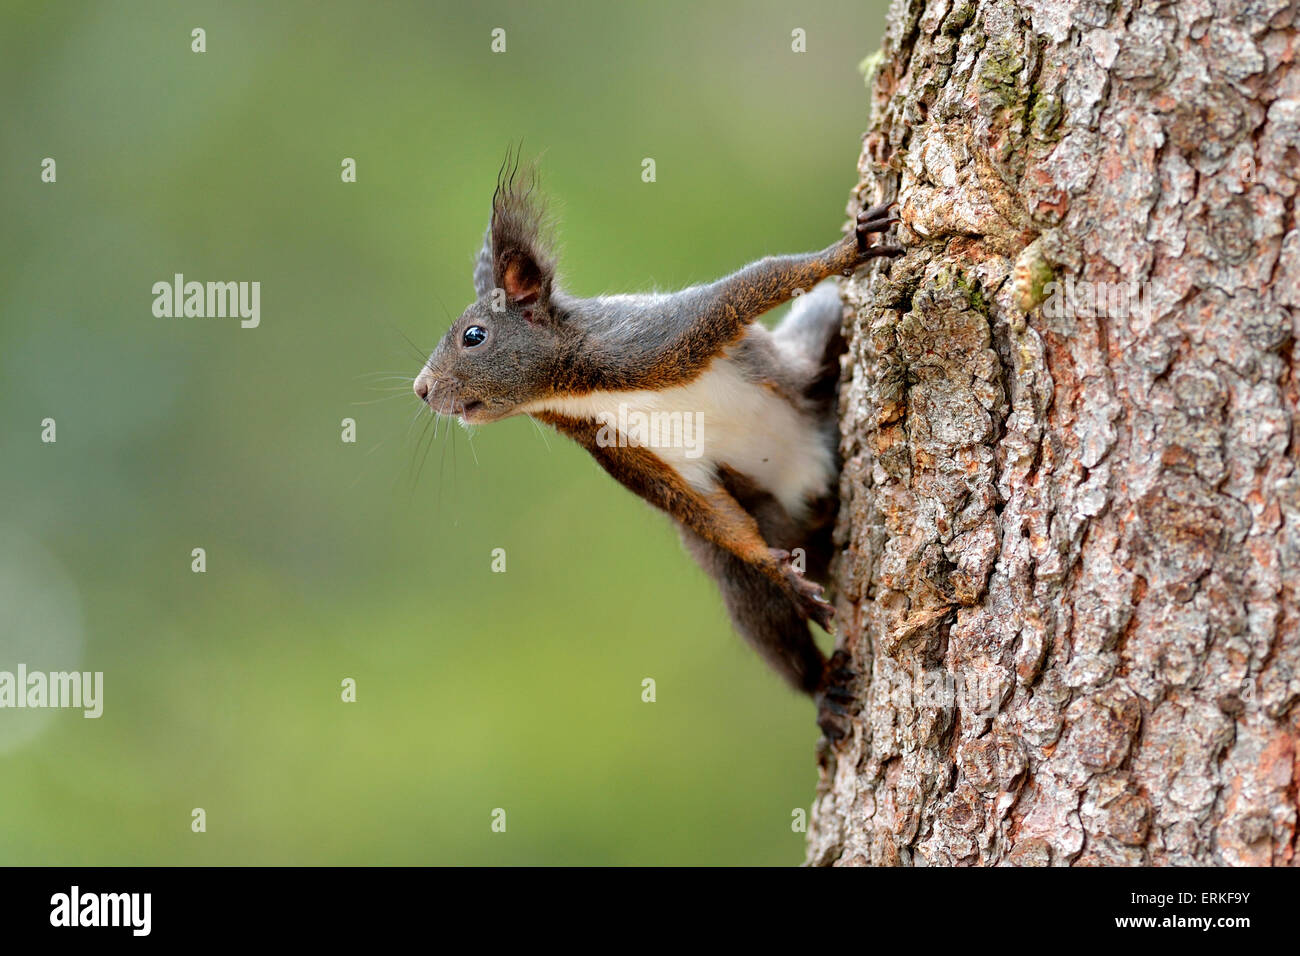 Squirrel (Sciurus vulgaris) climbing on tree trunk, Canton of Graubünden, Switzerland - Stock Image